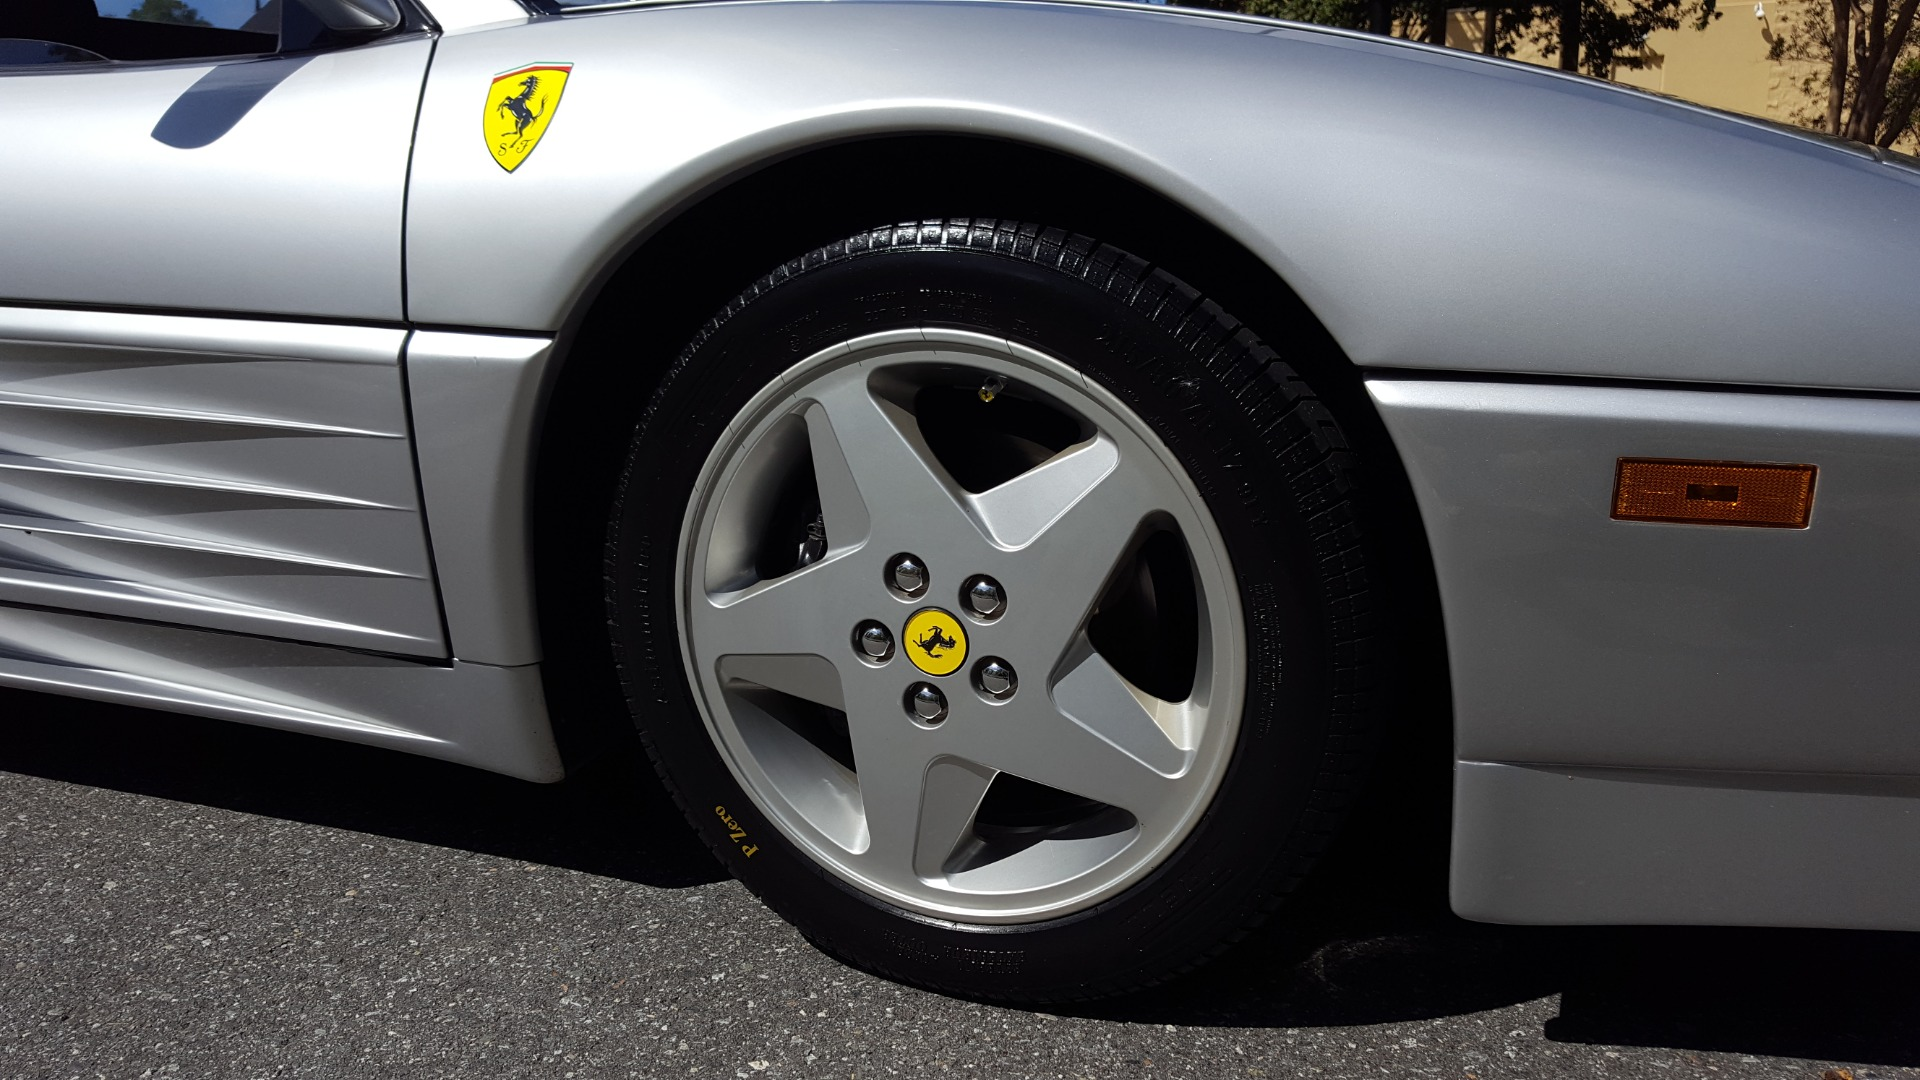 Used 1994 Ferrari 348 SPIDER CONVERTIBLE / GATED 5-SPD MANUAL for sale Sold at Formula Imports in Charlotte NC 28227 22